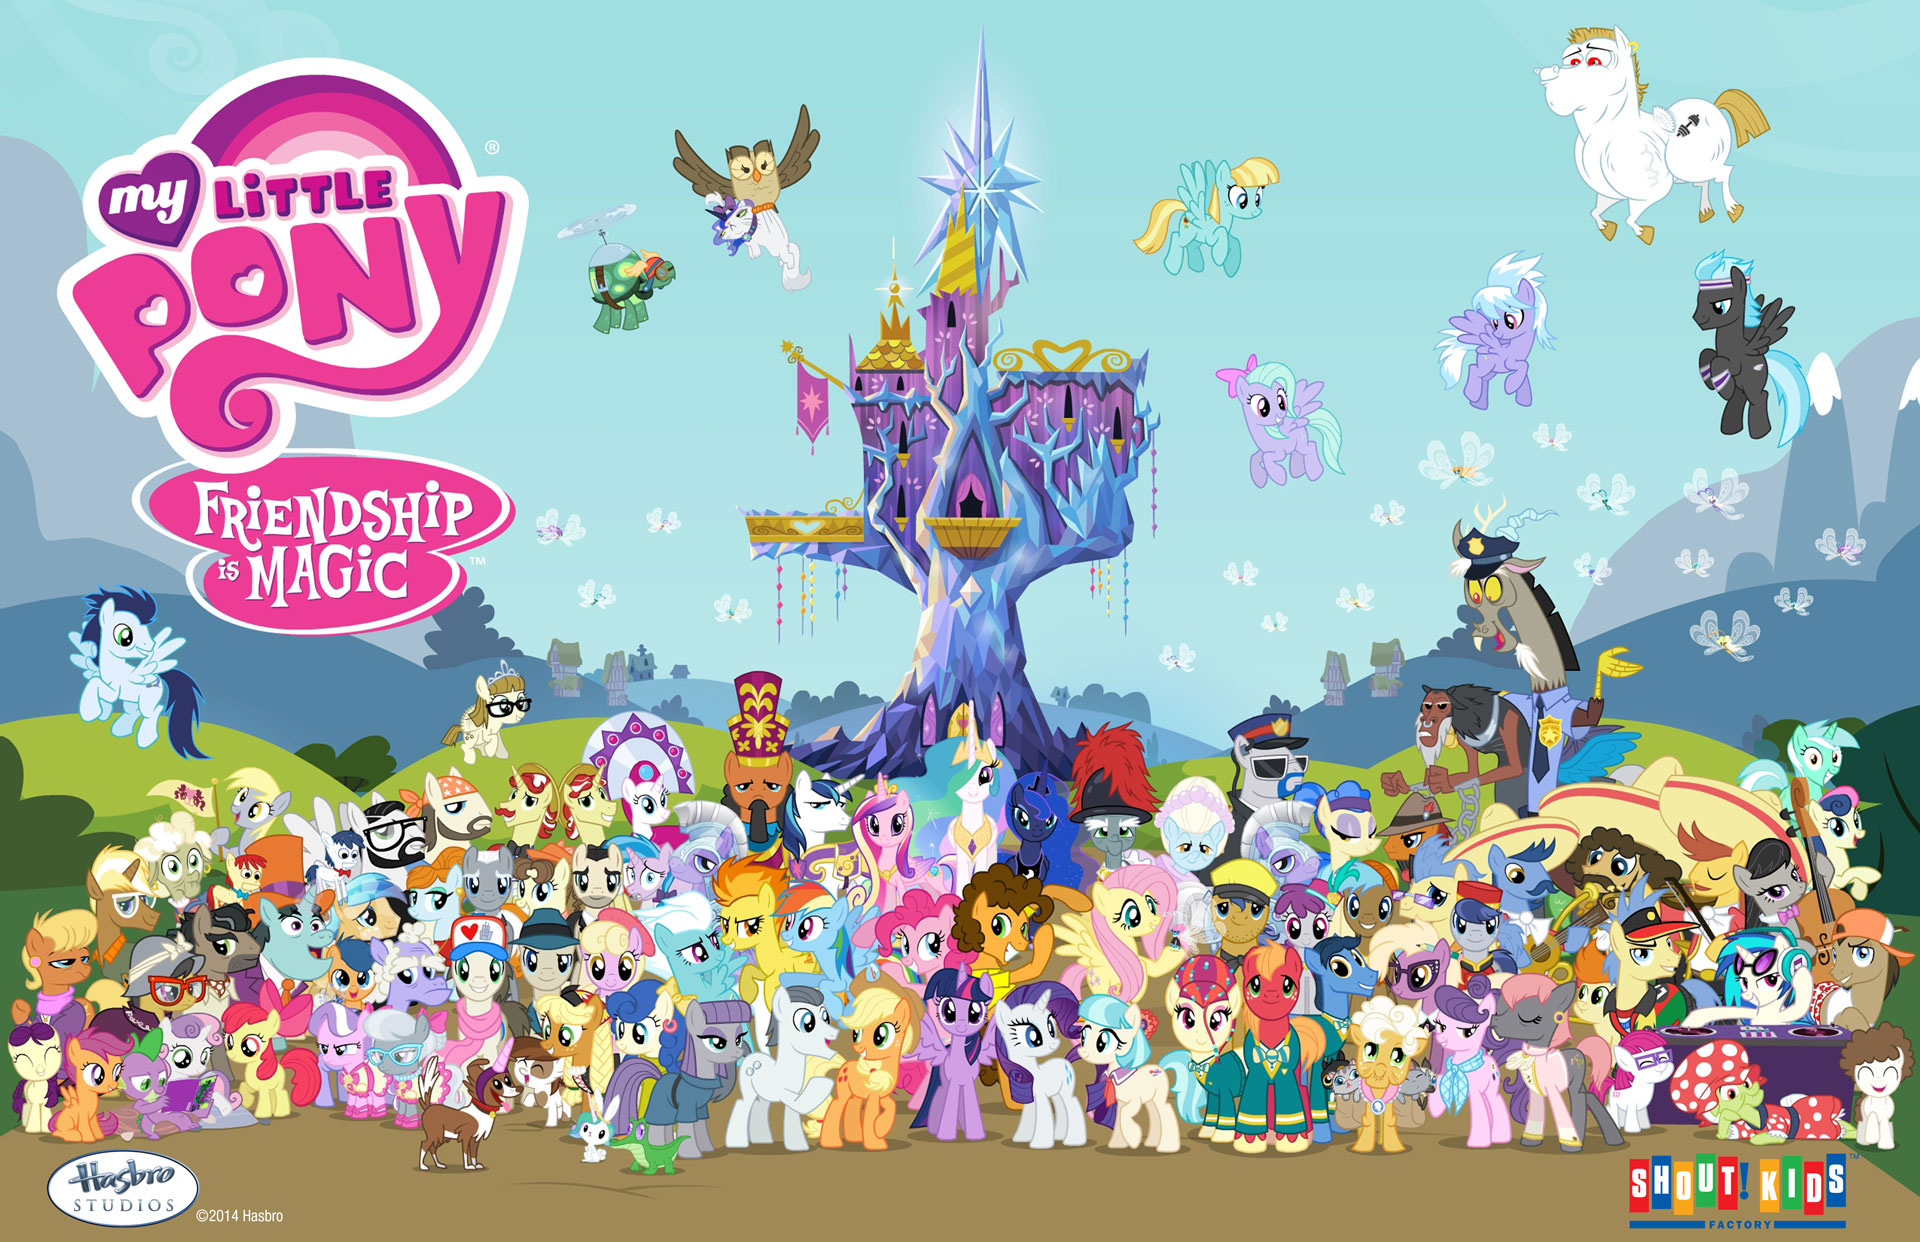 My little pony friendship is magic character profile - My little pony wikia ...